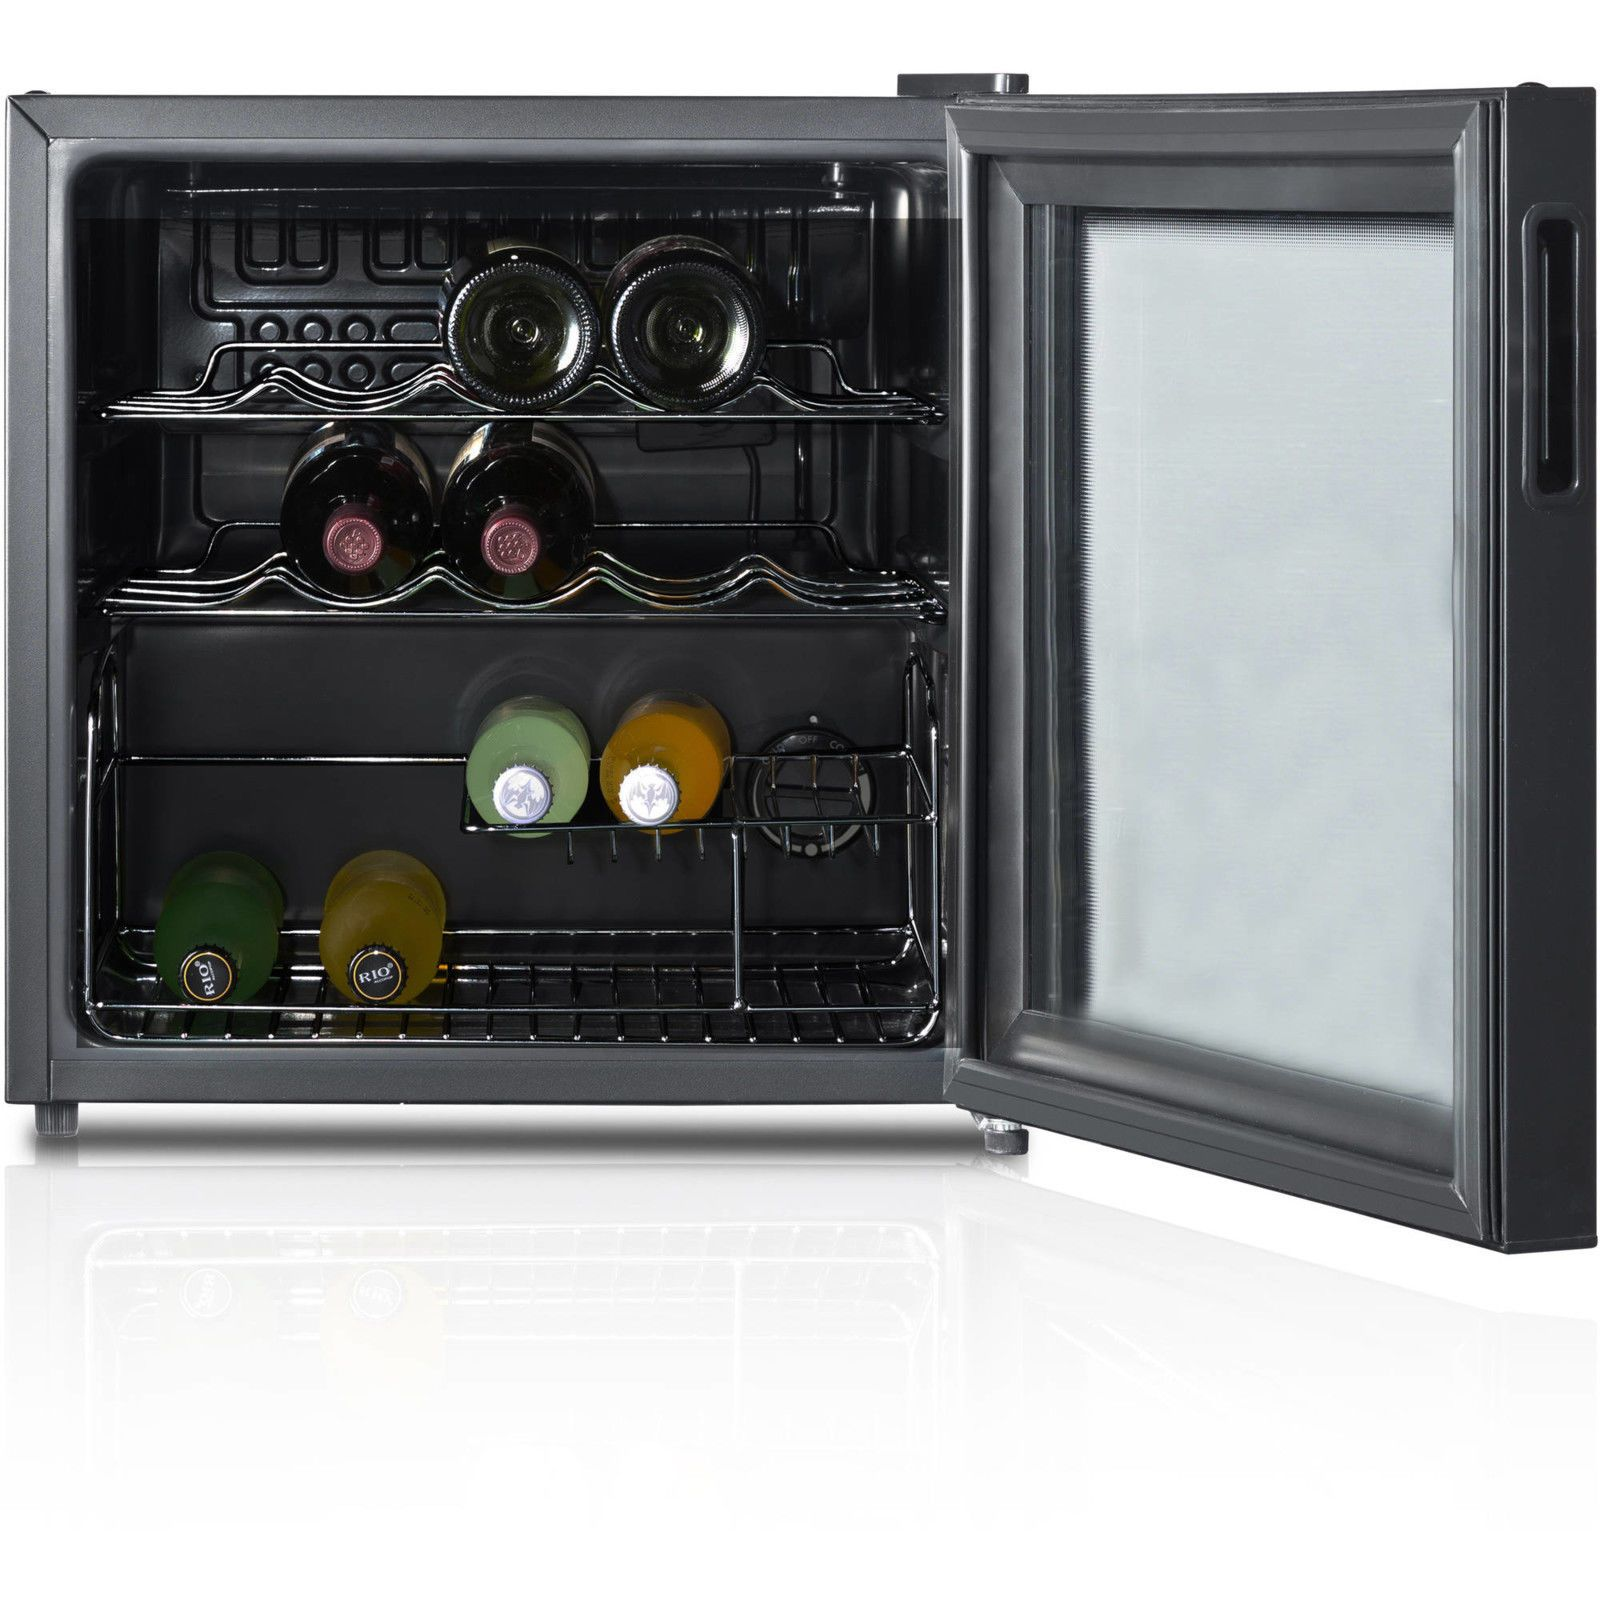 323261311434 not available Wine cooler, Wine bottle, Bar